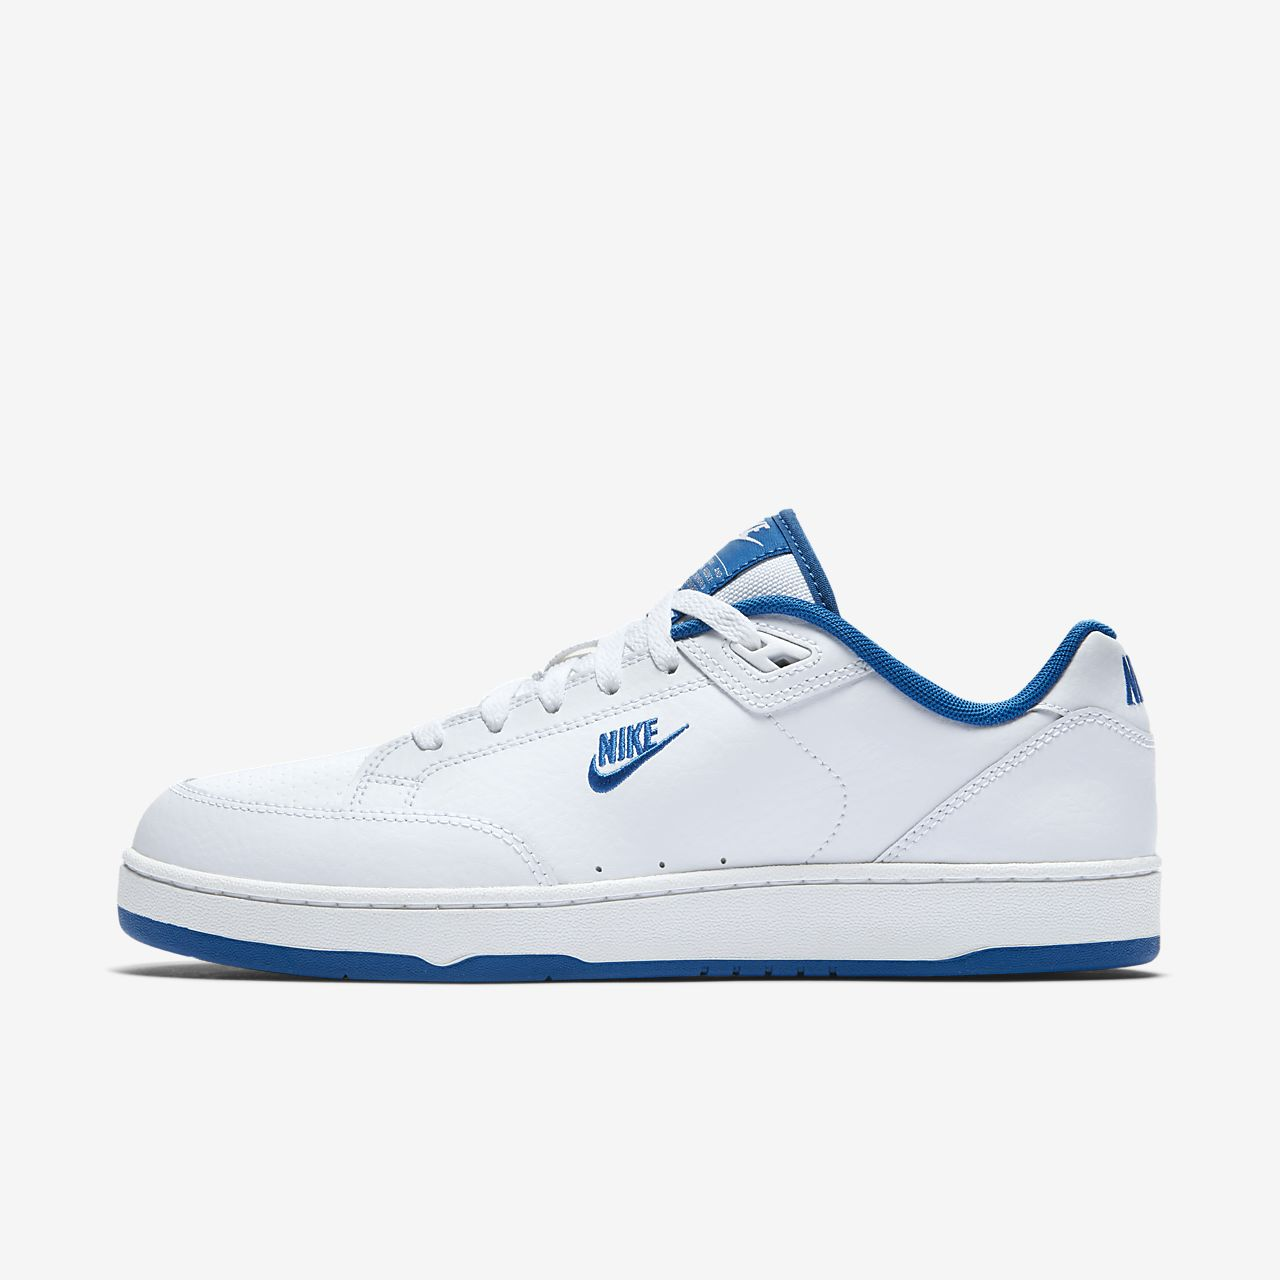 huge discount 36226 814b3 ... Chaussure Nike Grandstand II pour Homme